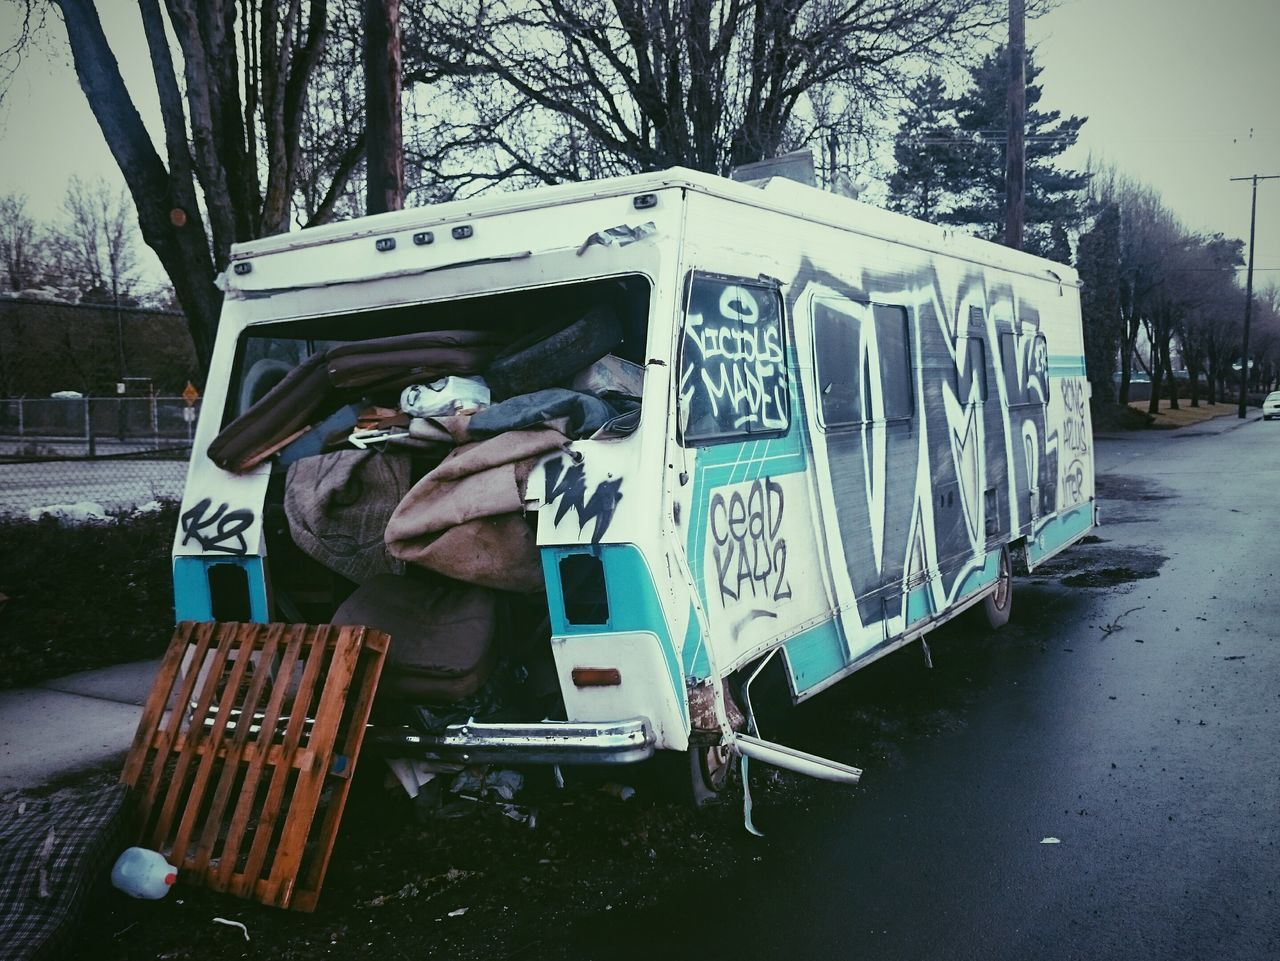 Rv Urban Wrinkles Of The City  Portland, OR North Portland Urban Landscape No People Abandoned Places Abandoned Urban Textures Graffiti Street Art Spray Paint Creativity Apocalyptic Visions